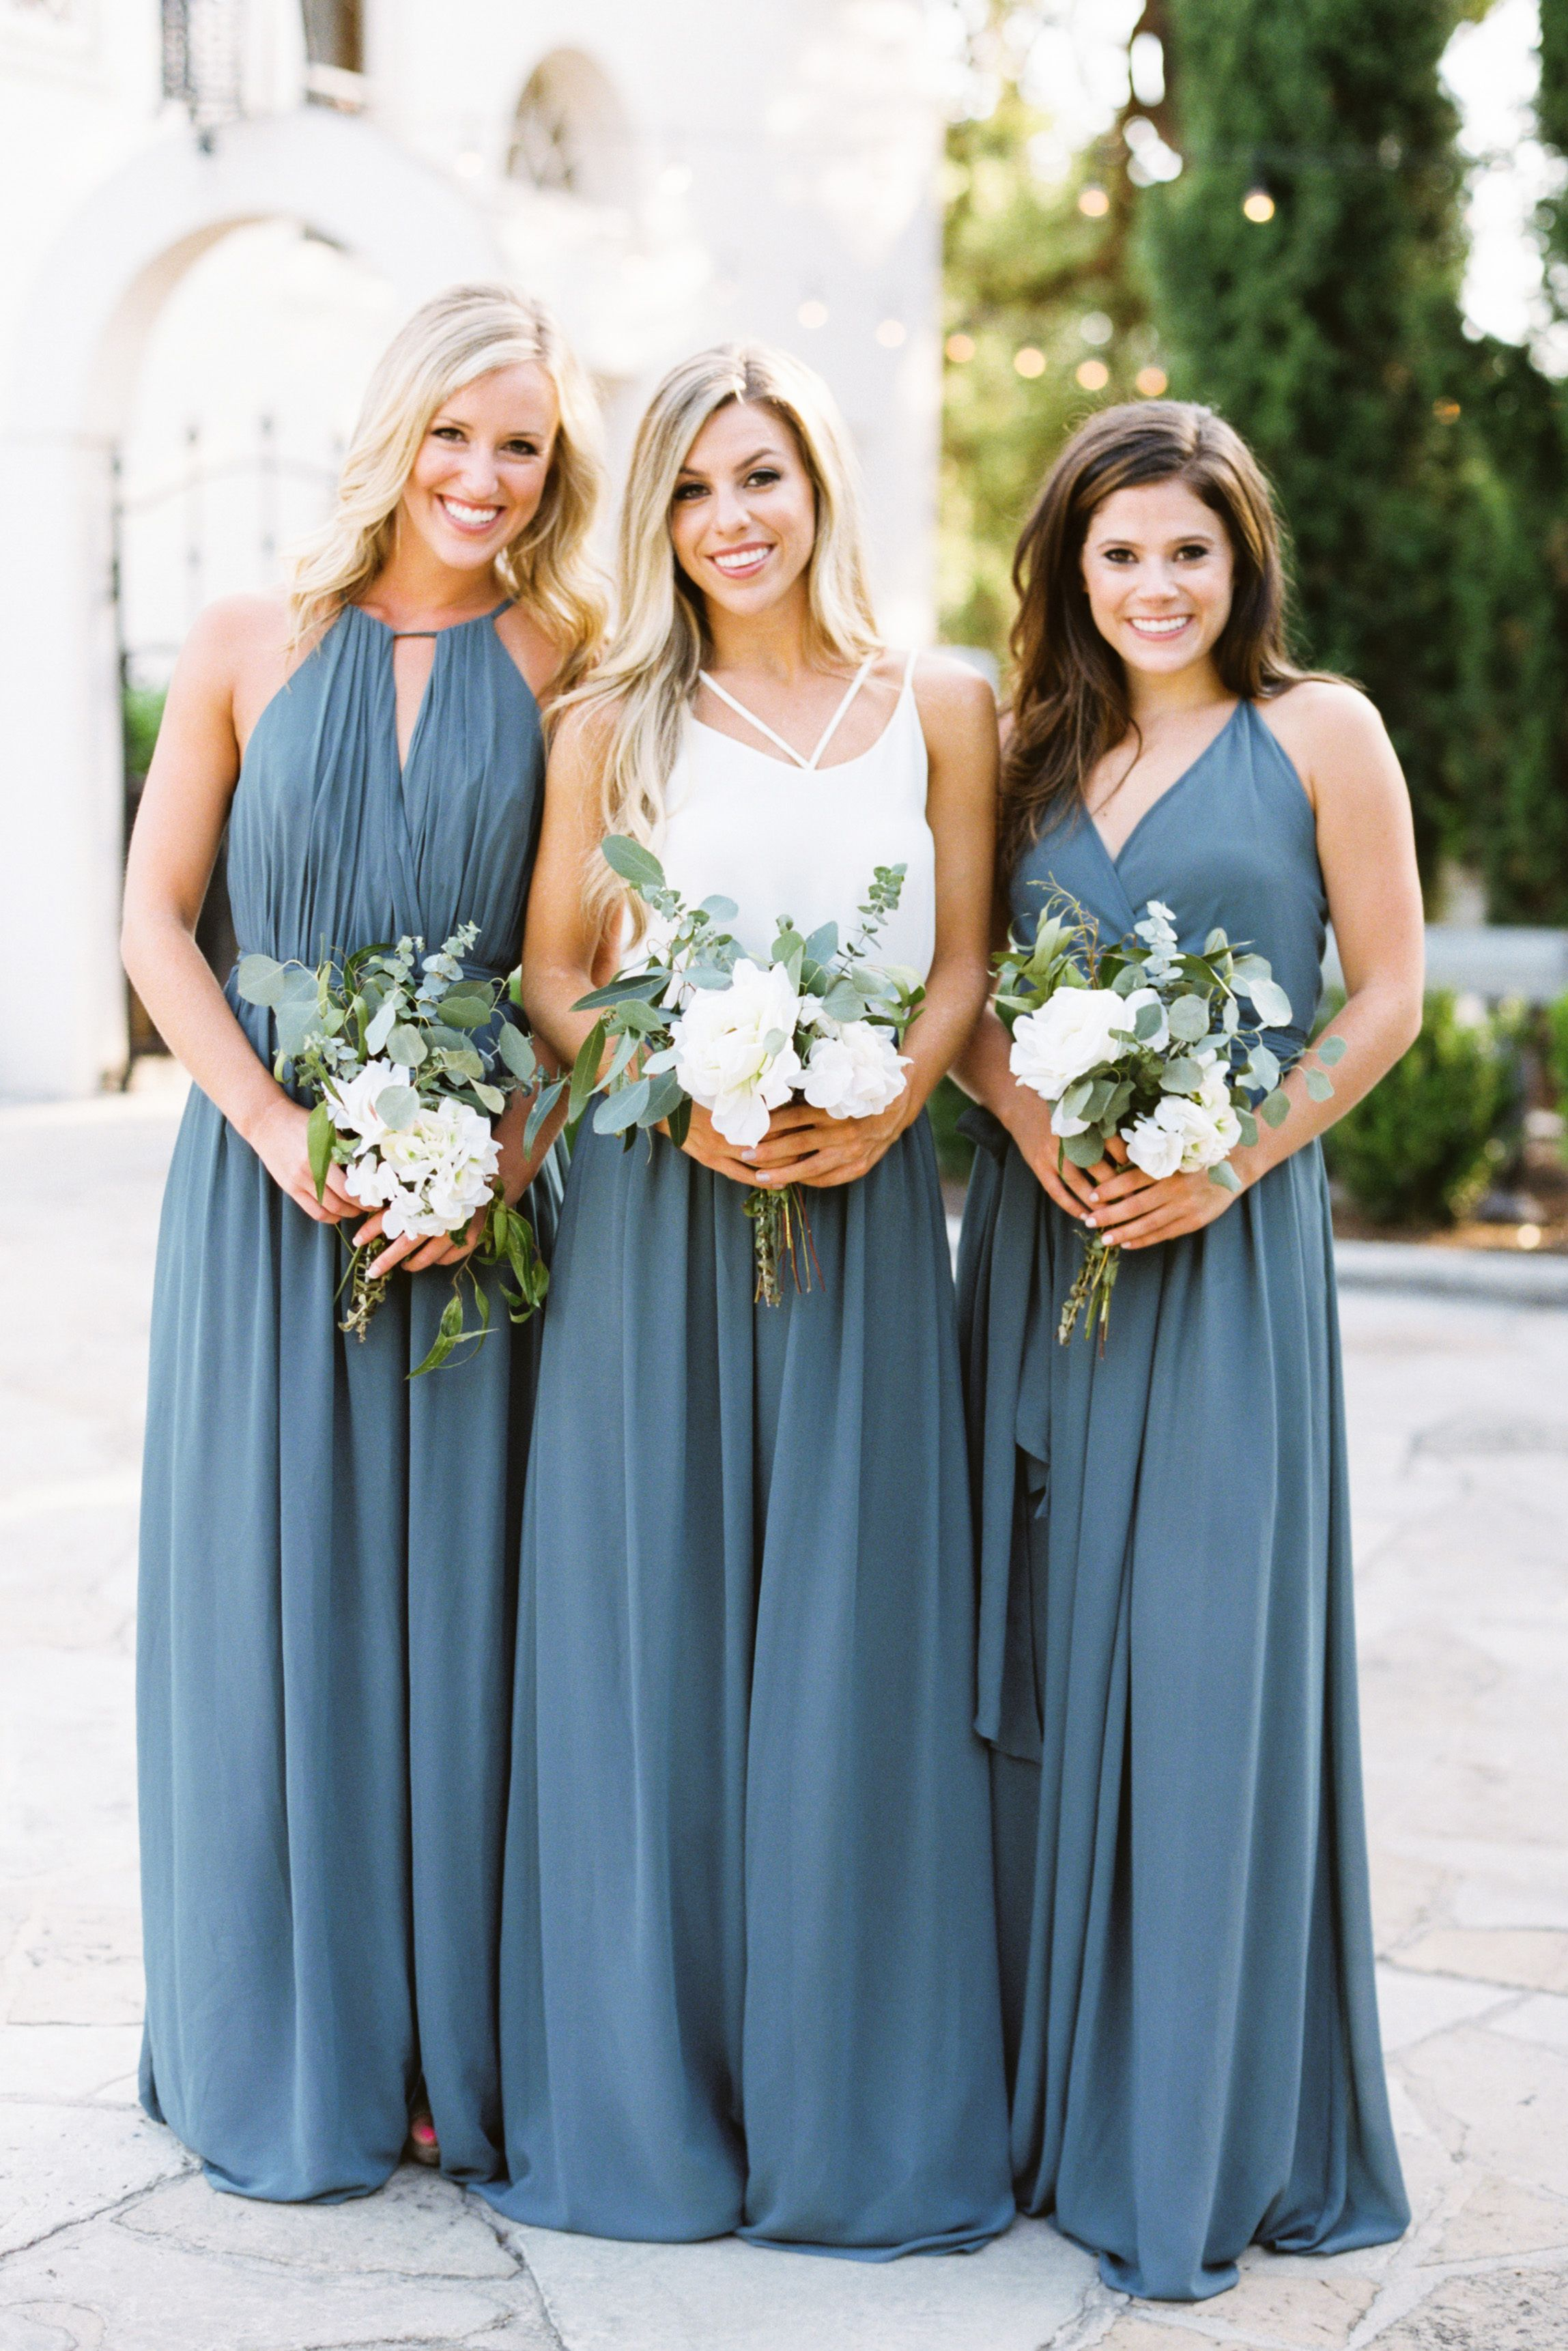 Revelry Bridesmaid Dresses And Separates Is A Collection Of Wear Ag Dusty Blue Bridesmaid Dresses Bridesmaid Dresses Separates Wedding Bridesmaids Dresses Blue